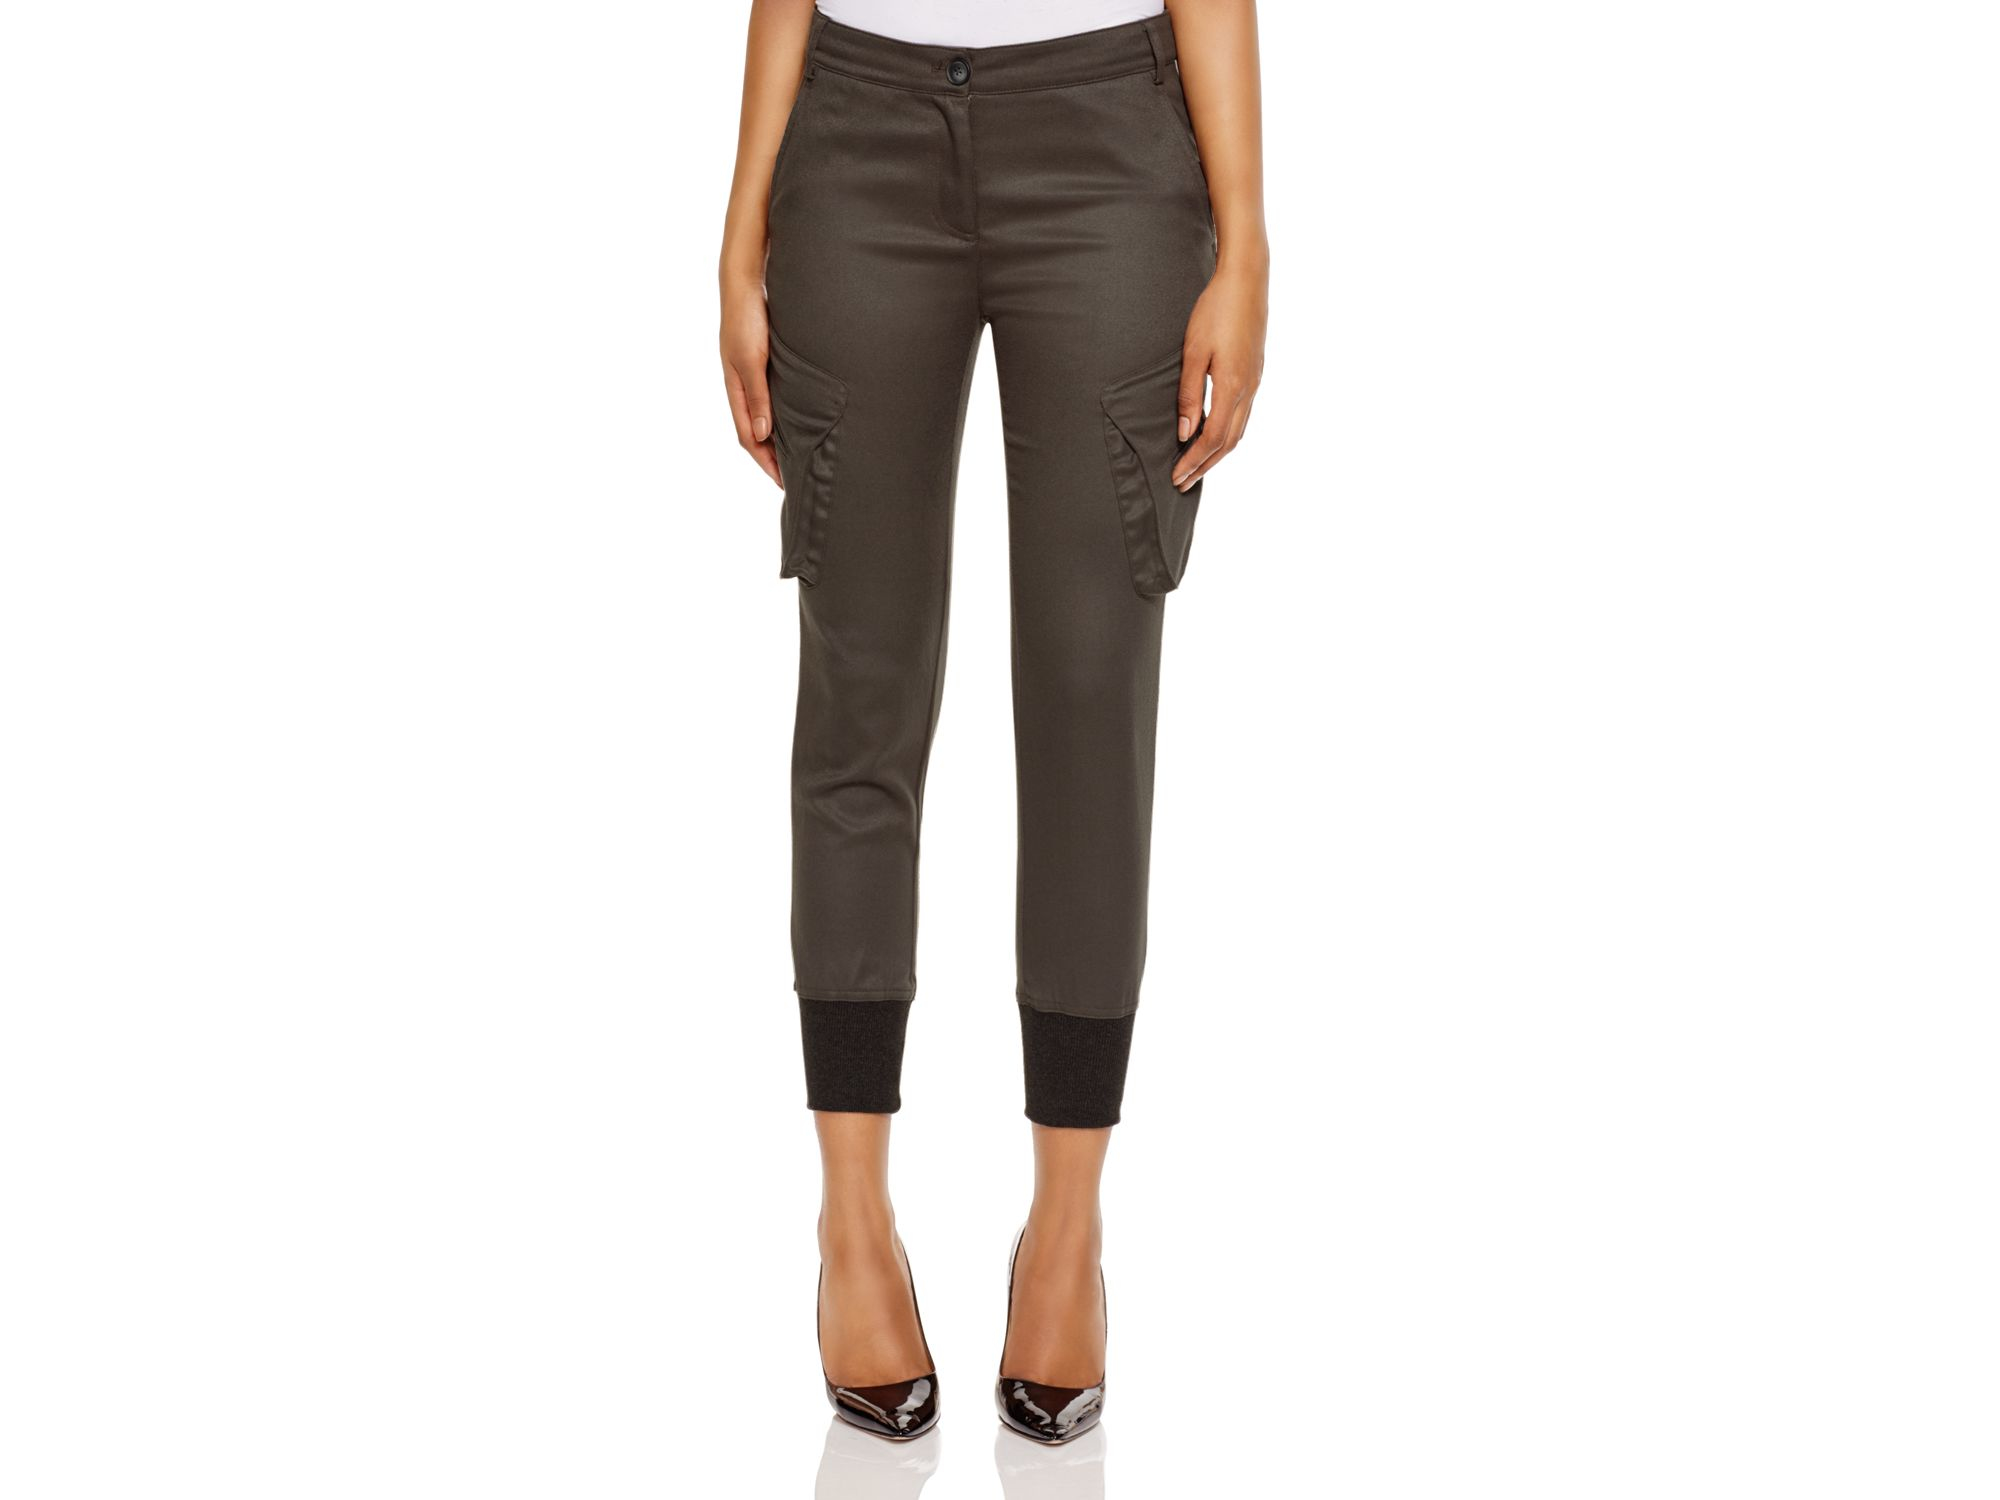 James jeans Skinny Cargo Pants In Olive in Green | Lyst